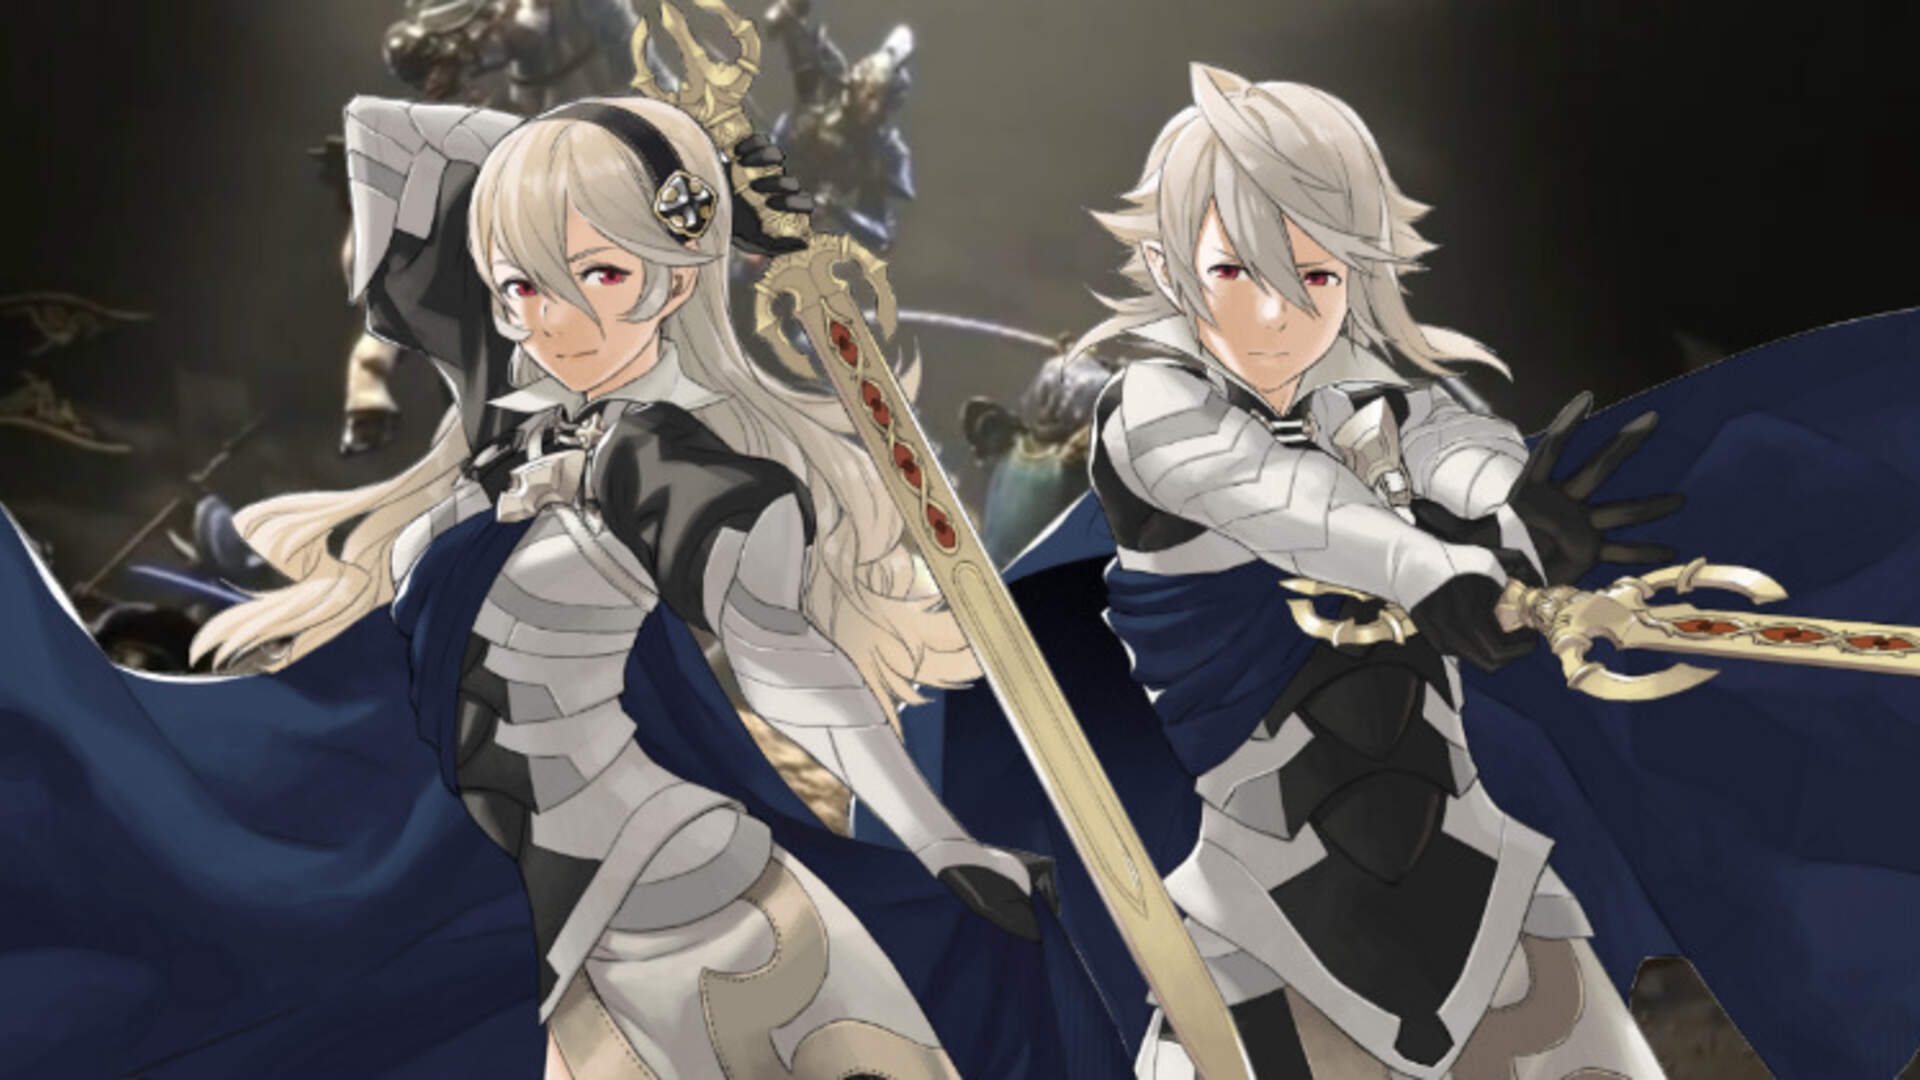 Fire Emblem Fates Adds Same-Sex Relationships, Brings Two Editions to the U.S.